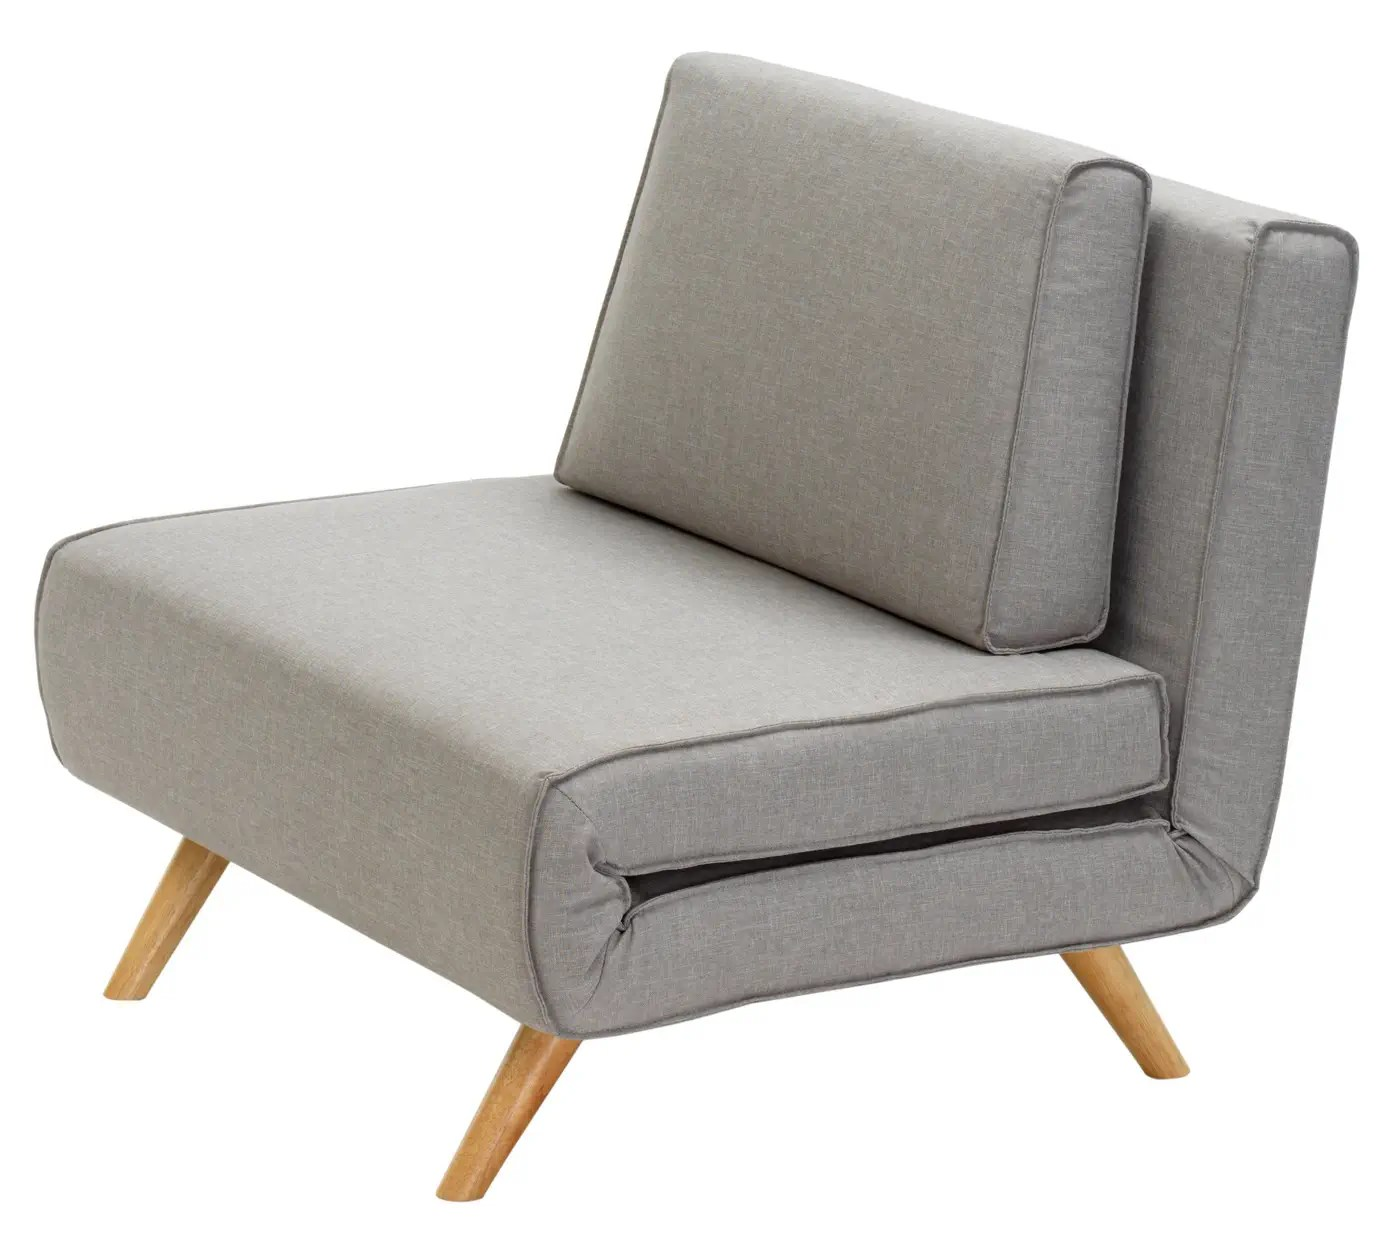 Bettsofa Gestell Henni Bettsofa Migros